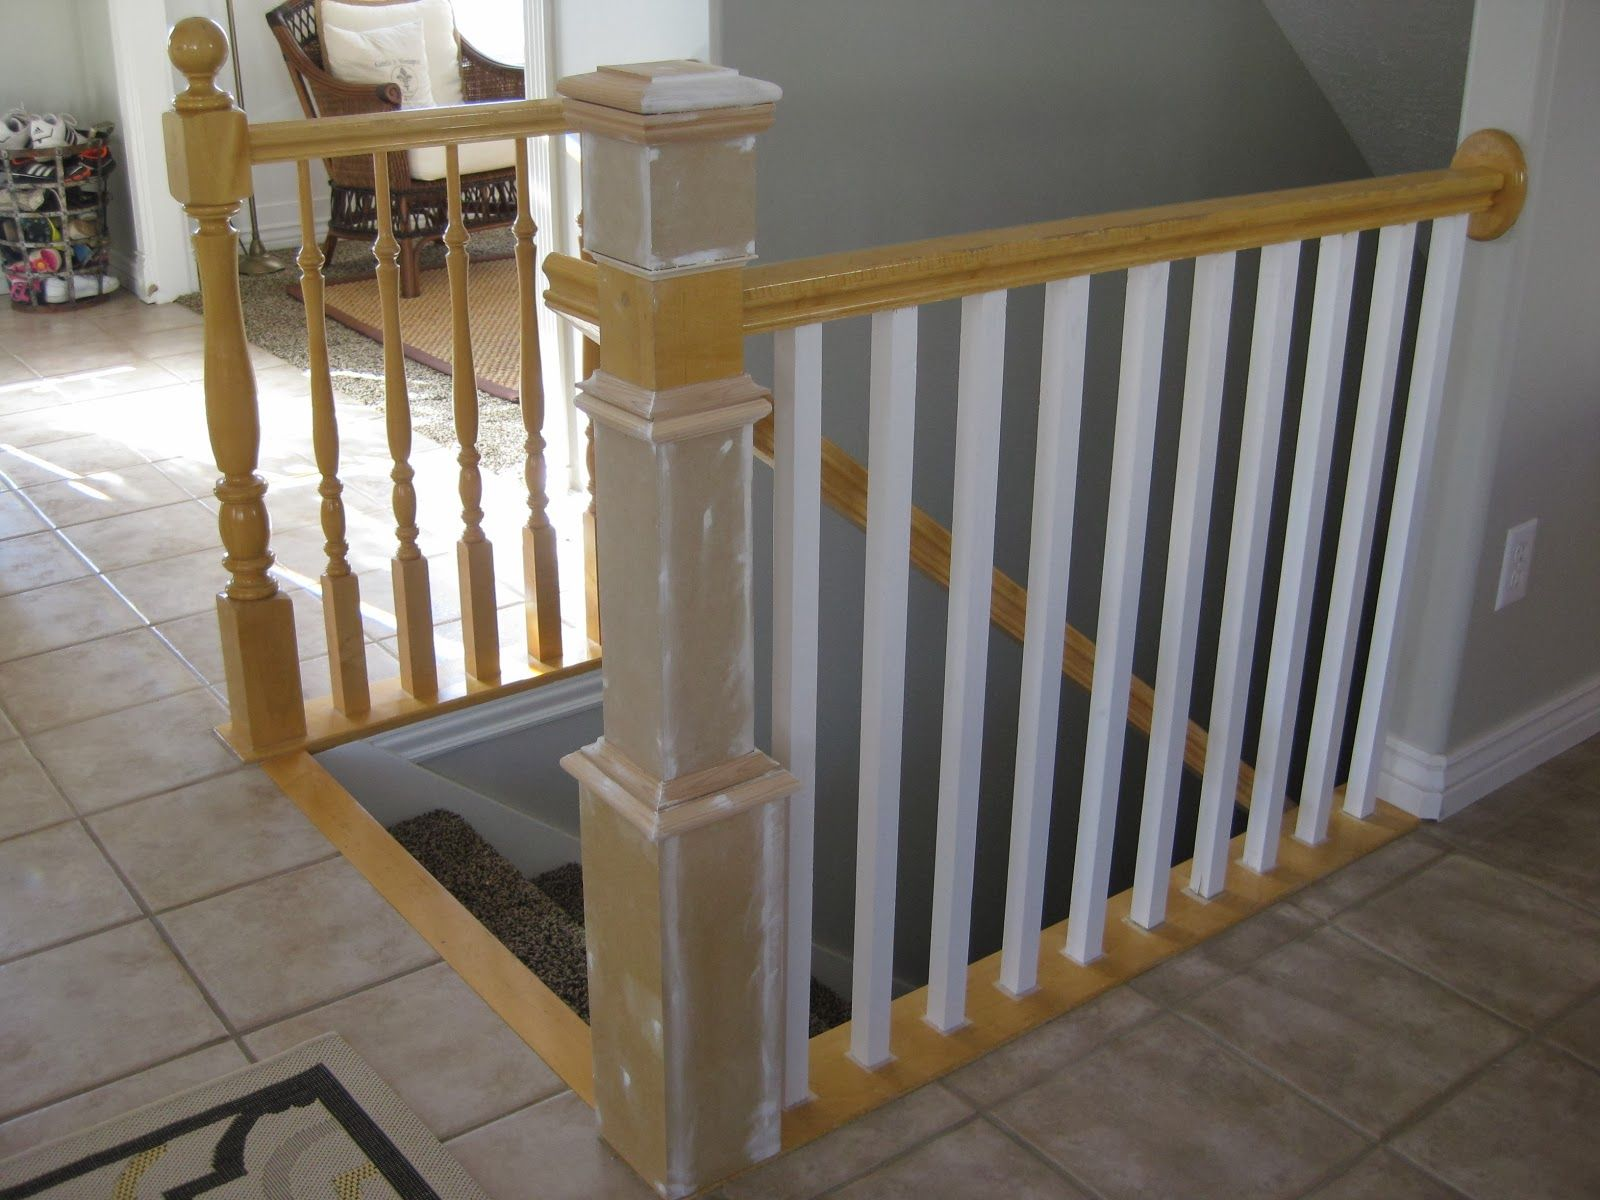 Tda Decorating And Design Diy Stair Banister Tutorial Part 2 Replacing The Spindles